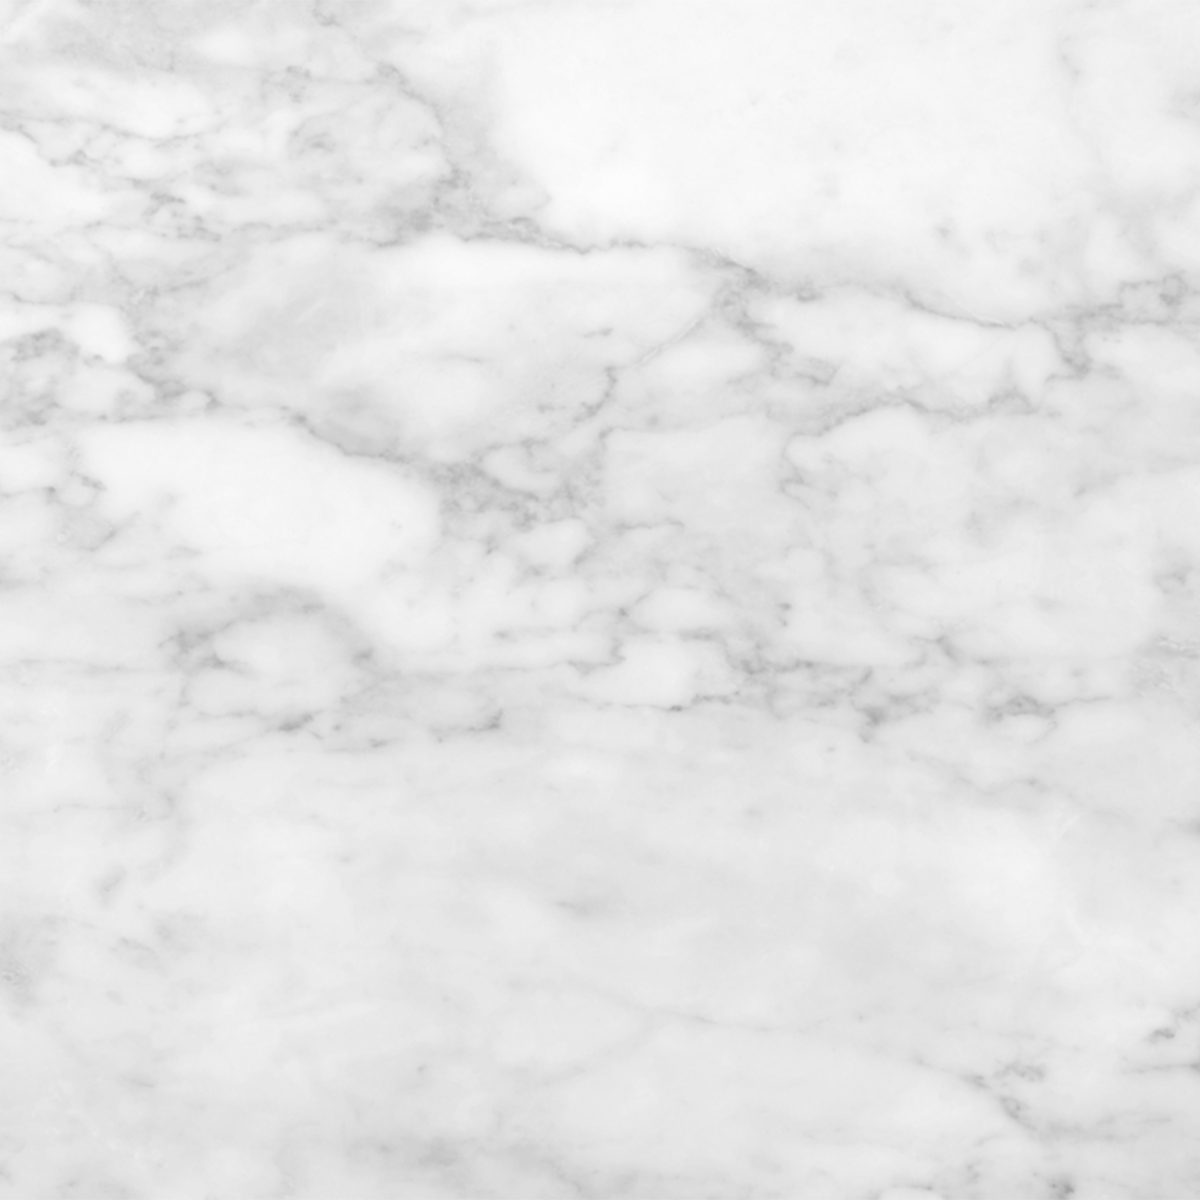 Home Trend White Marble The Family Handyman